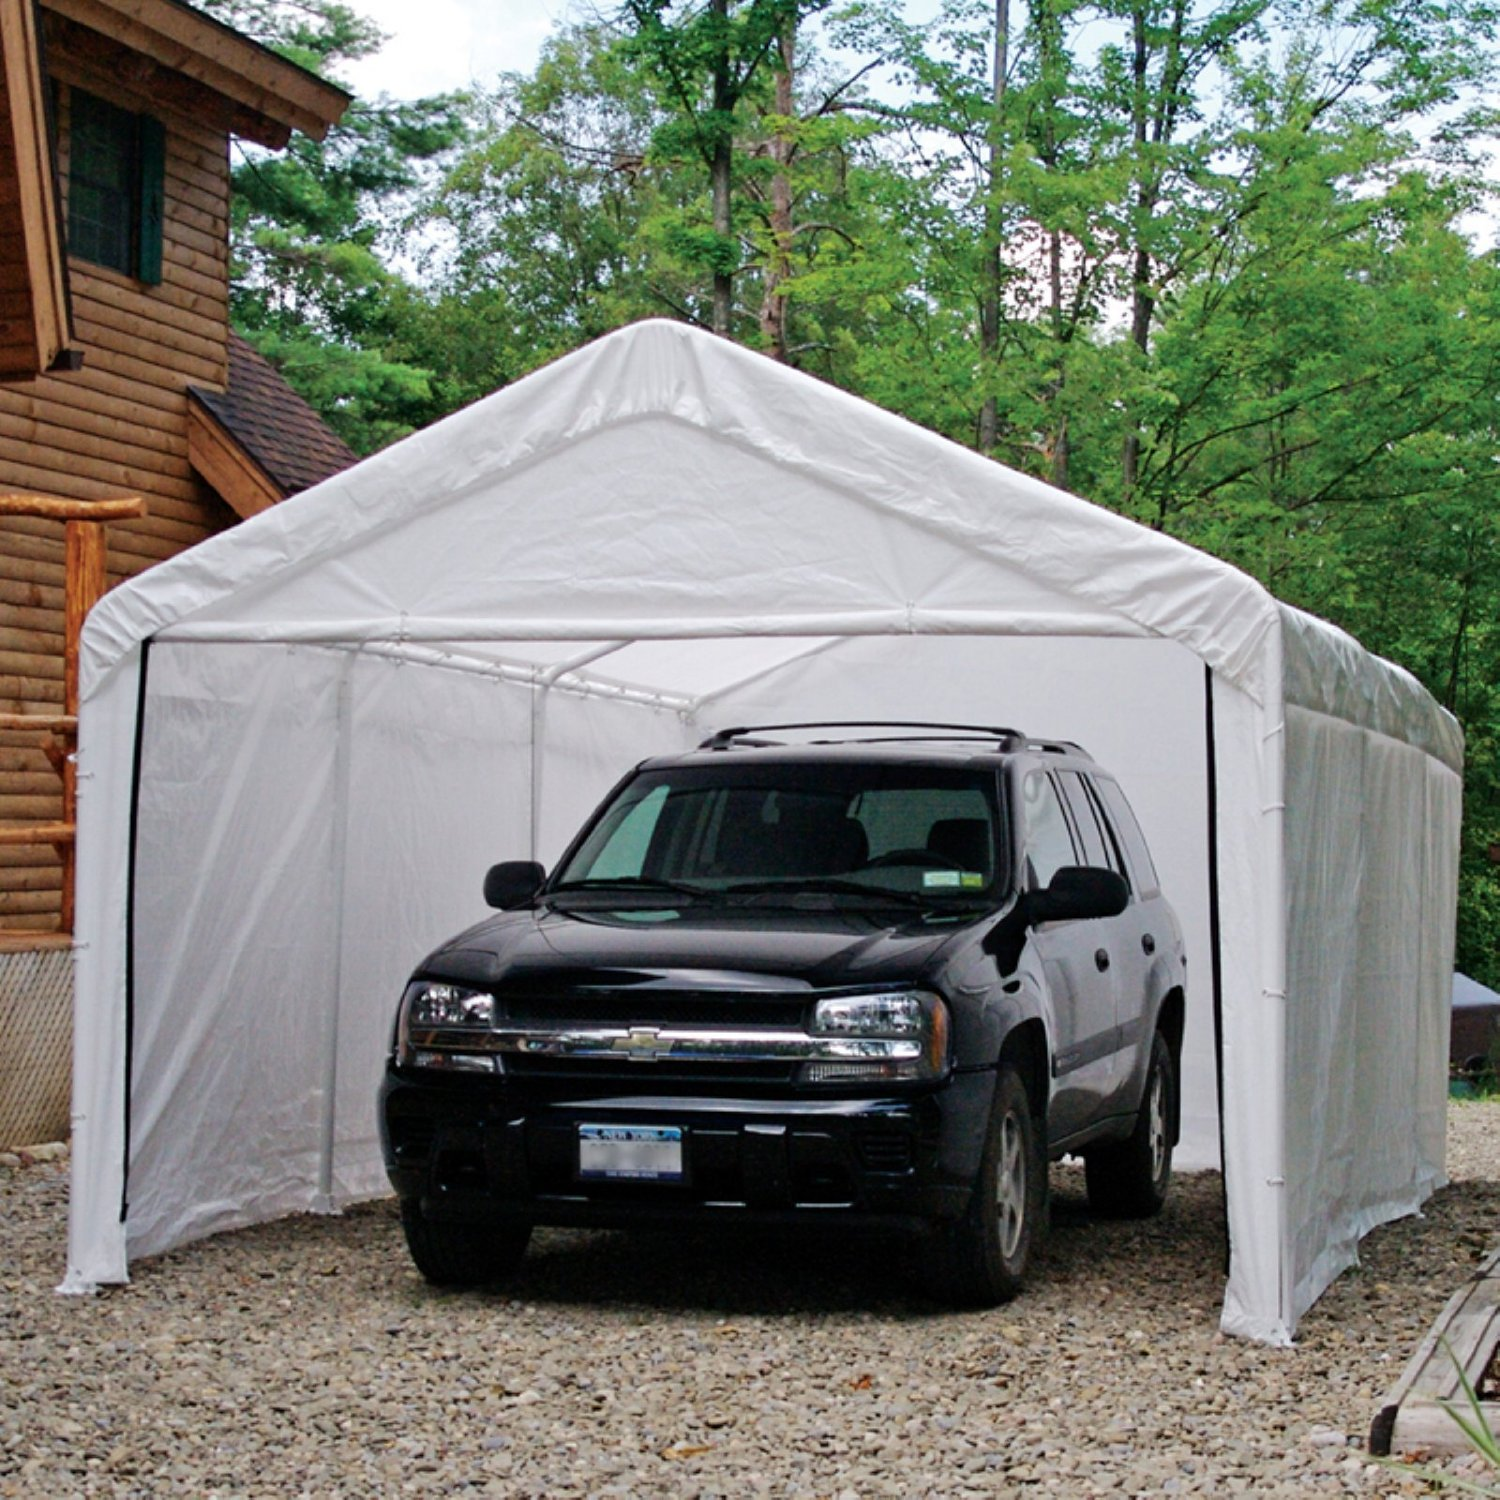 car canopy enclosure kit - white, canopy not included UCQVXVP